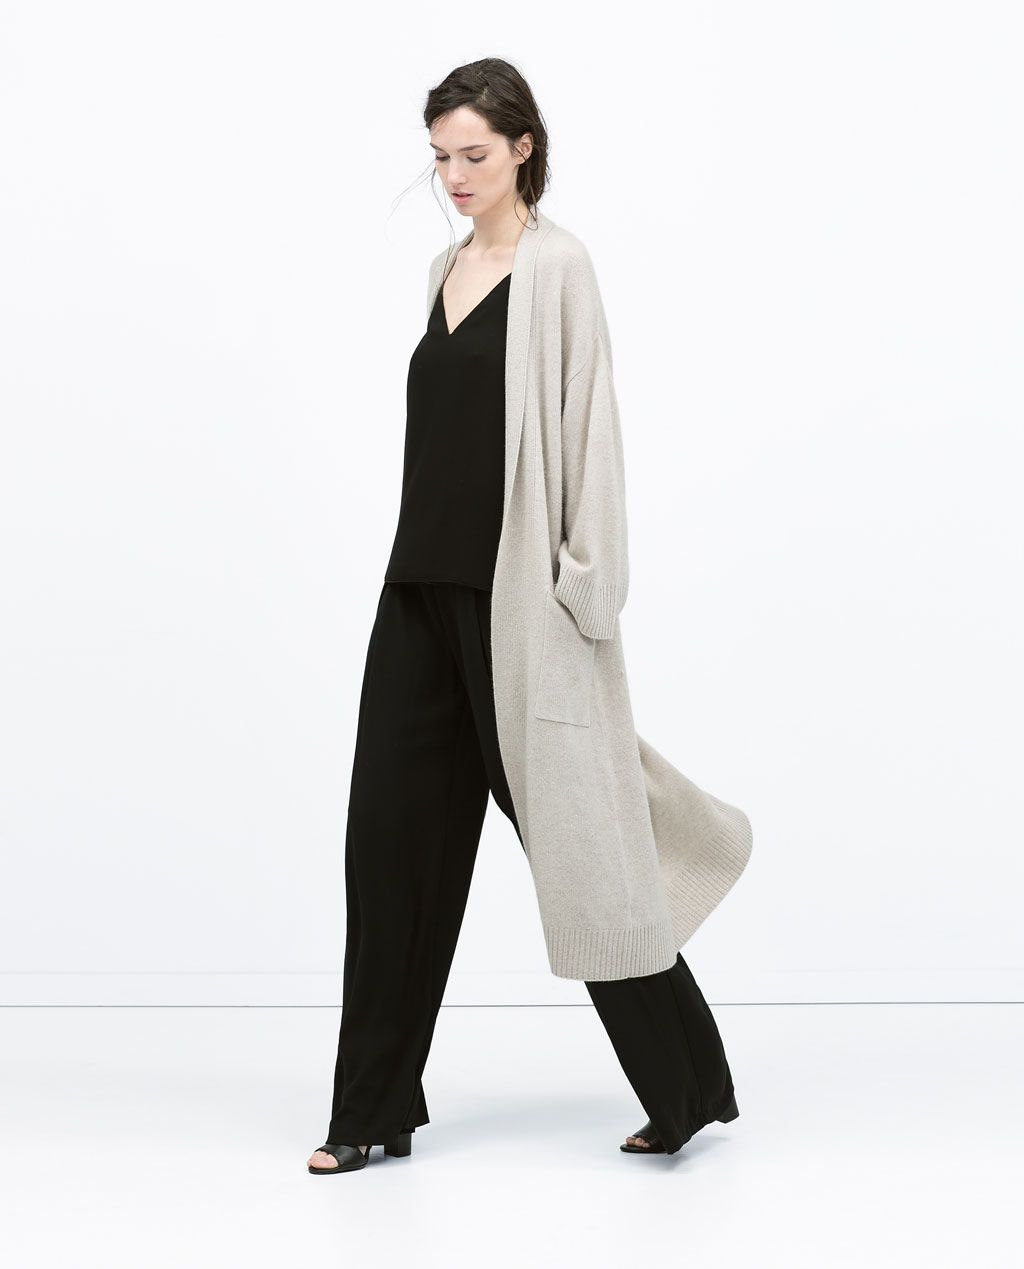 LONG CASHMERE COAT from Zara | sartorial | Pinterest | Zara ...